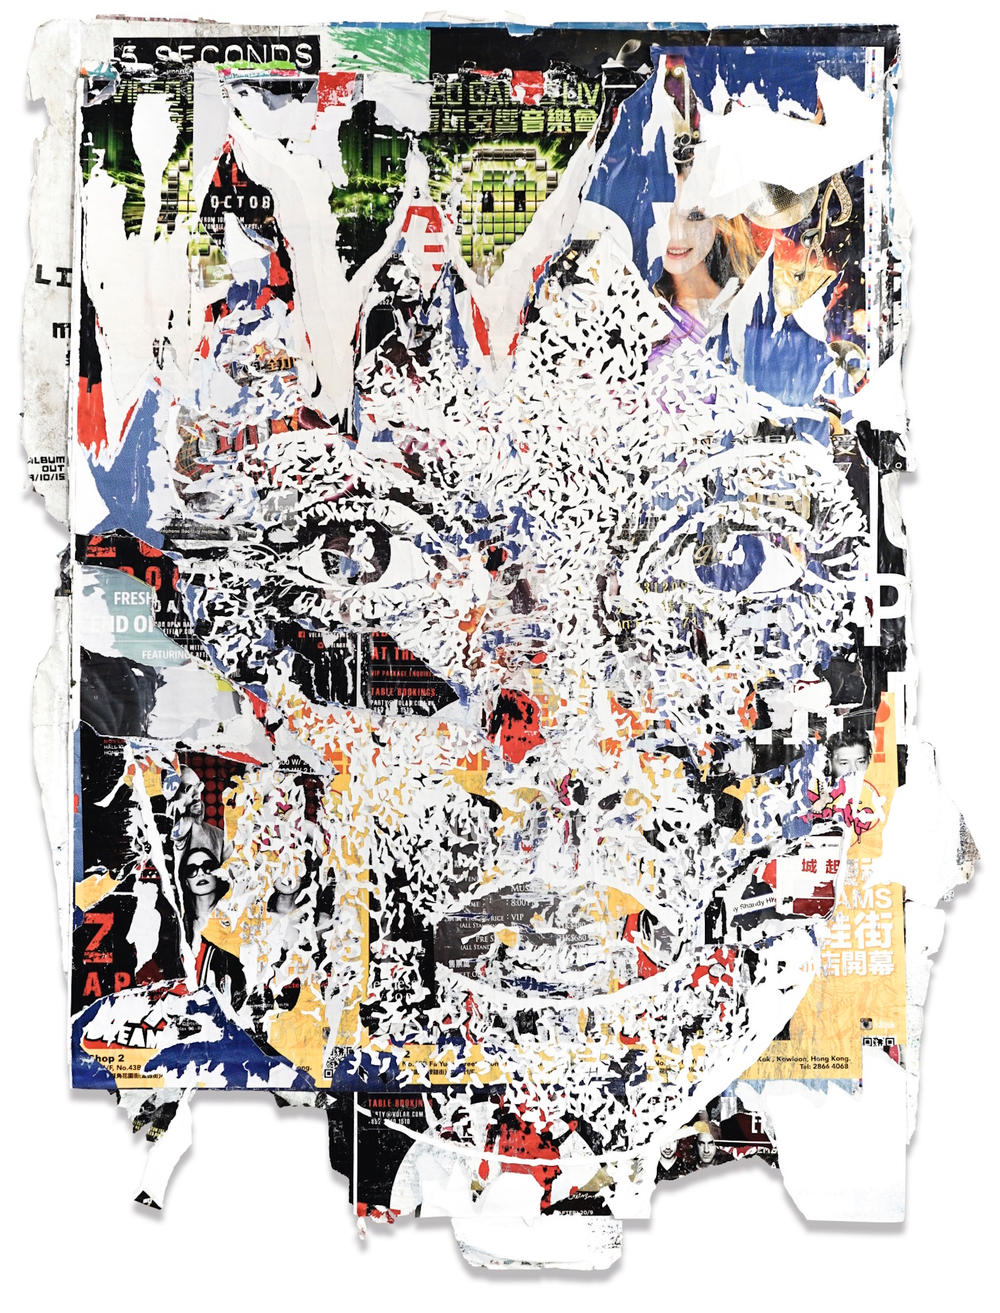 Sotheby's Hong Kong Contemporary Art Foundation HOCA Invader Shepard Fairey Obey Giant Alexandre Farto Vhils Anthony Lister Jose Parla